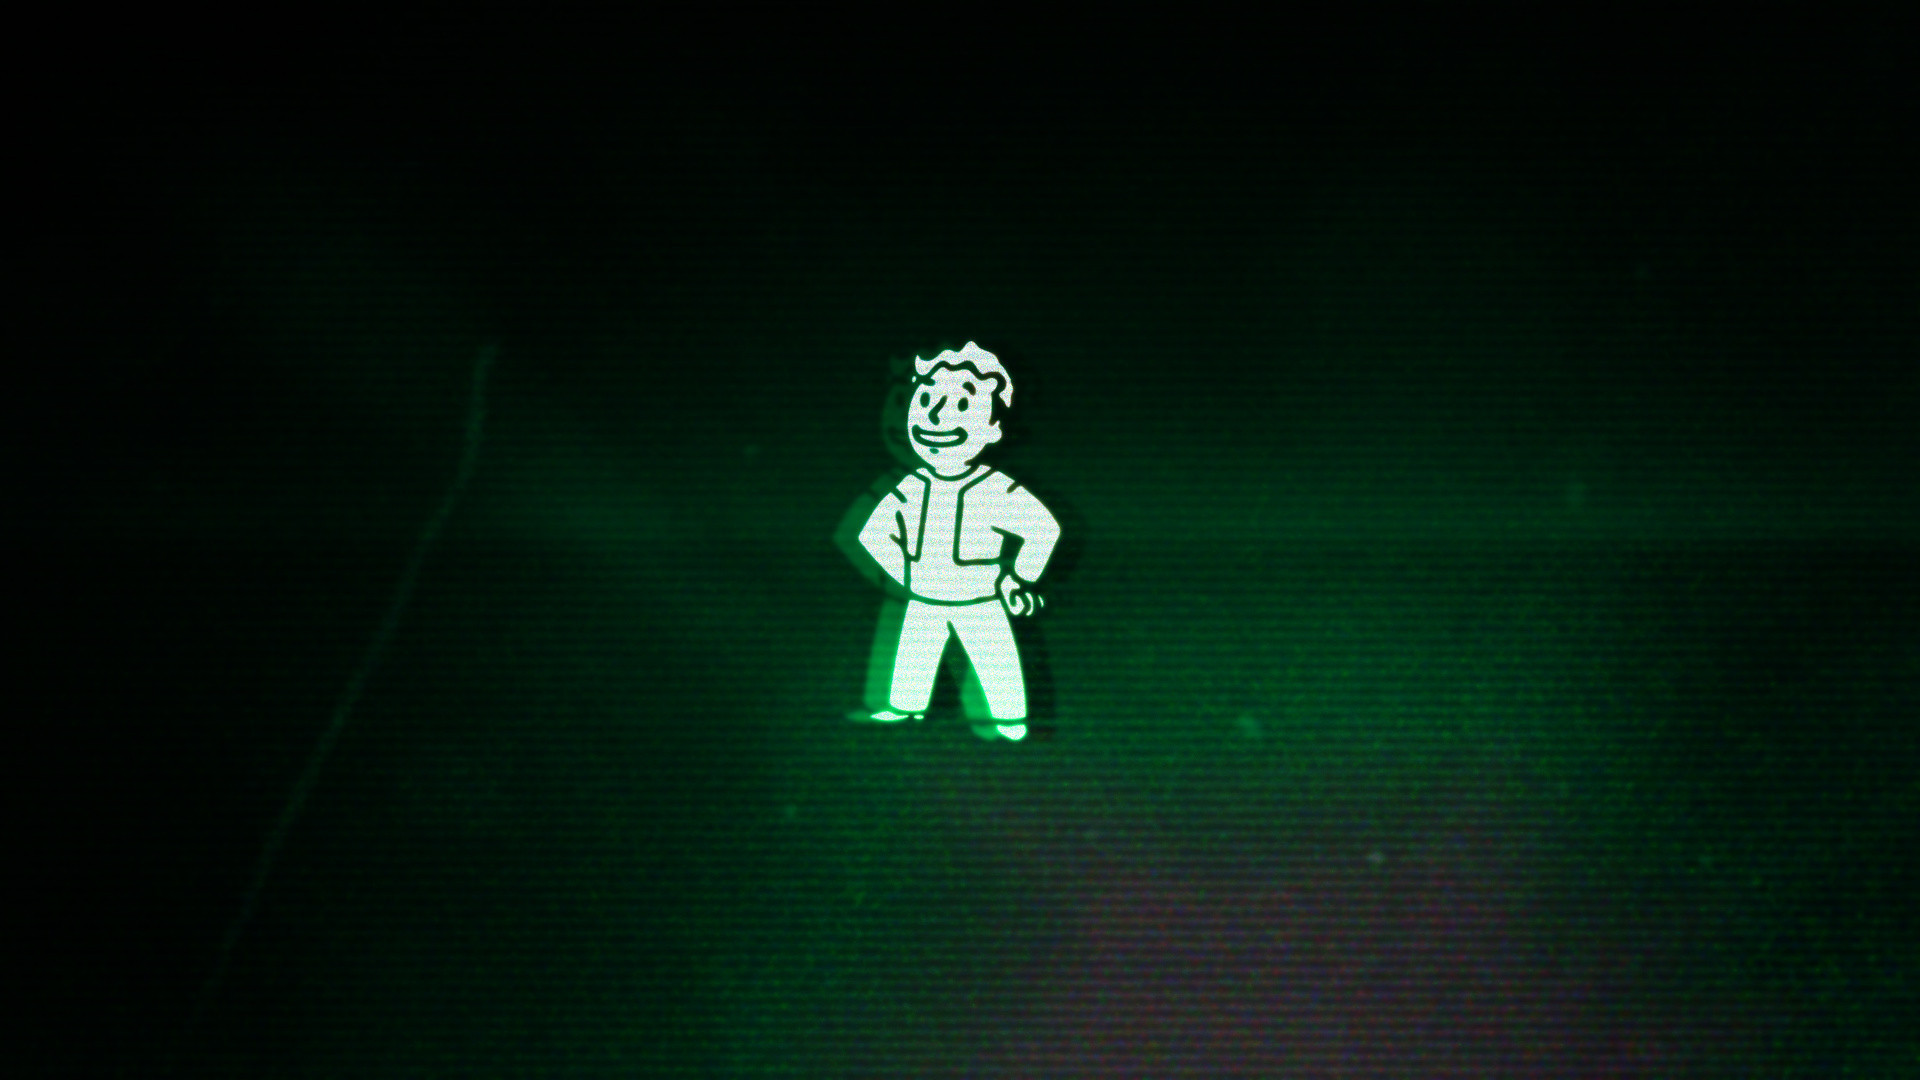 1920x1080 pip boy wallpaper Car Pictures